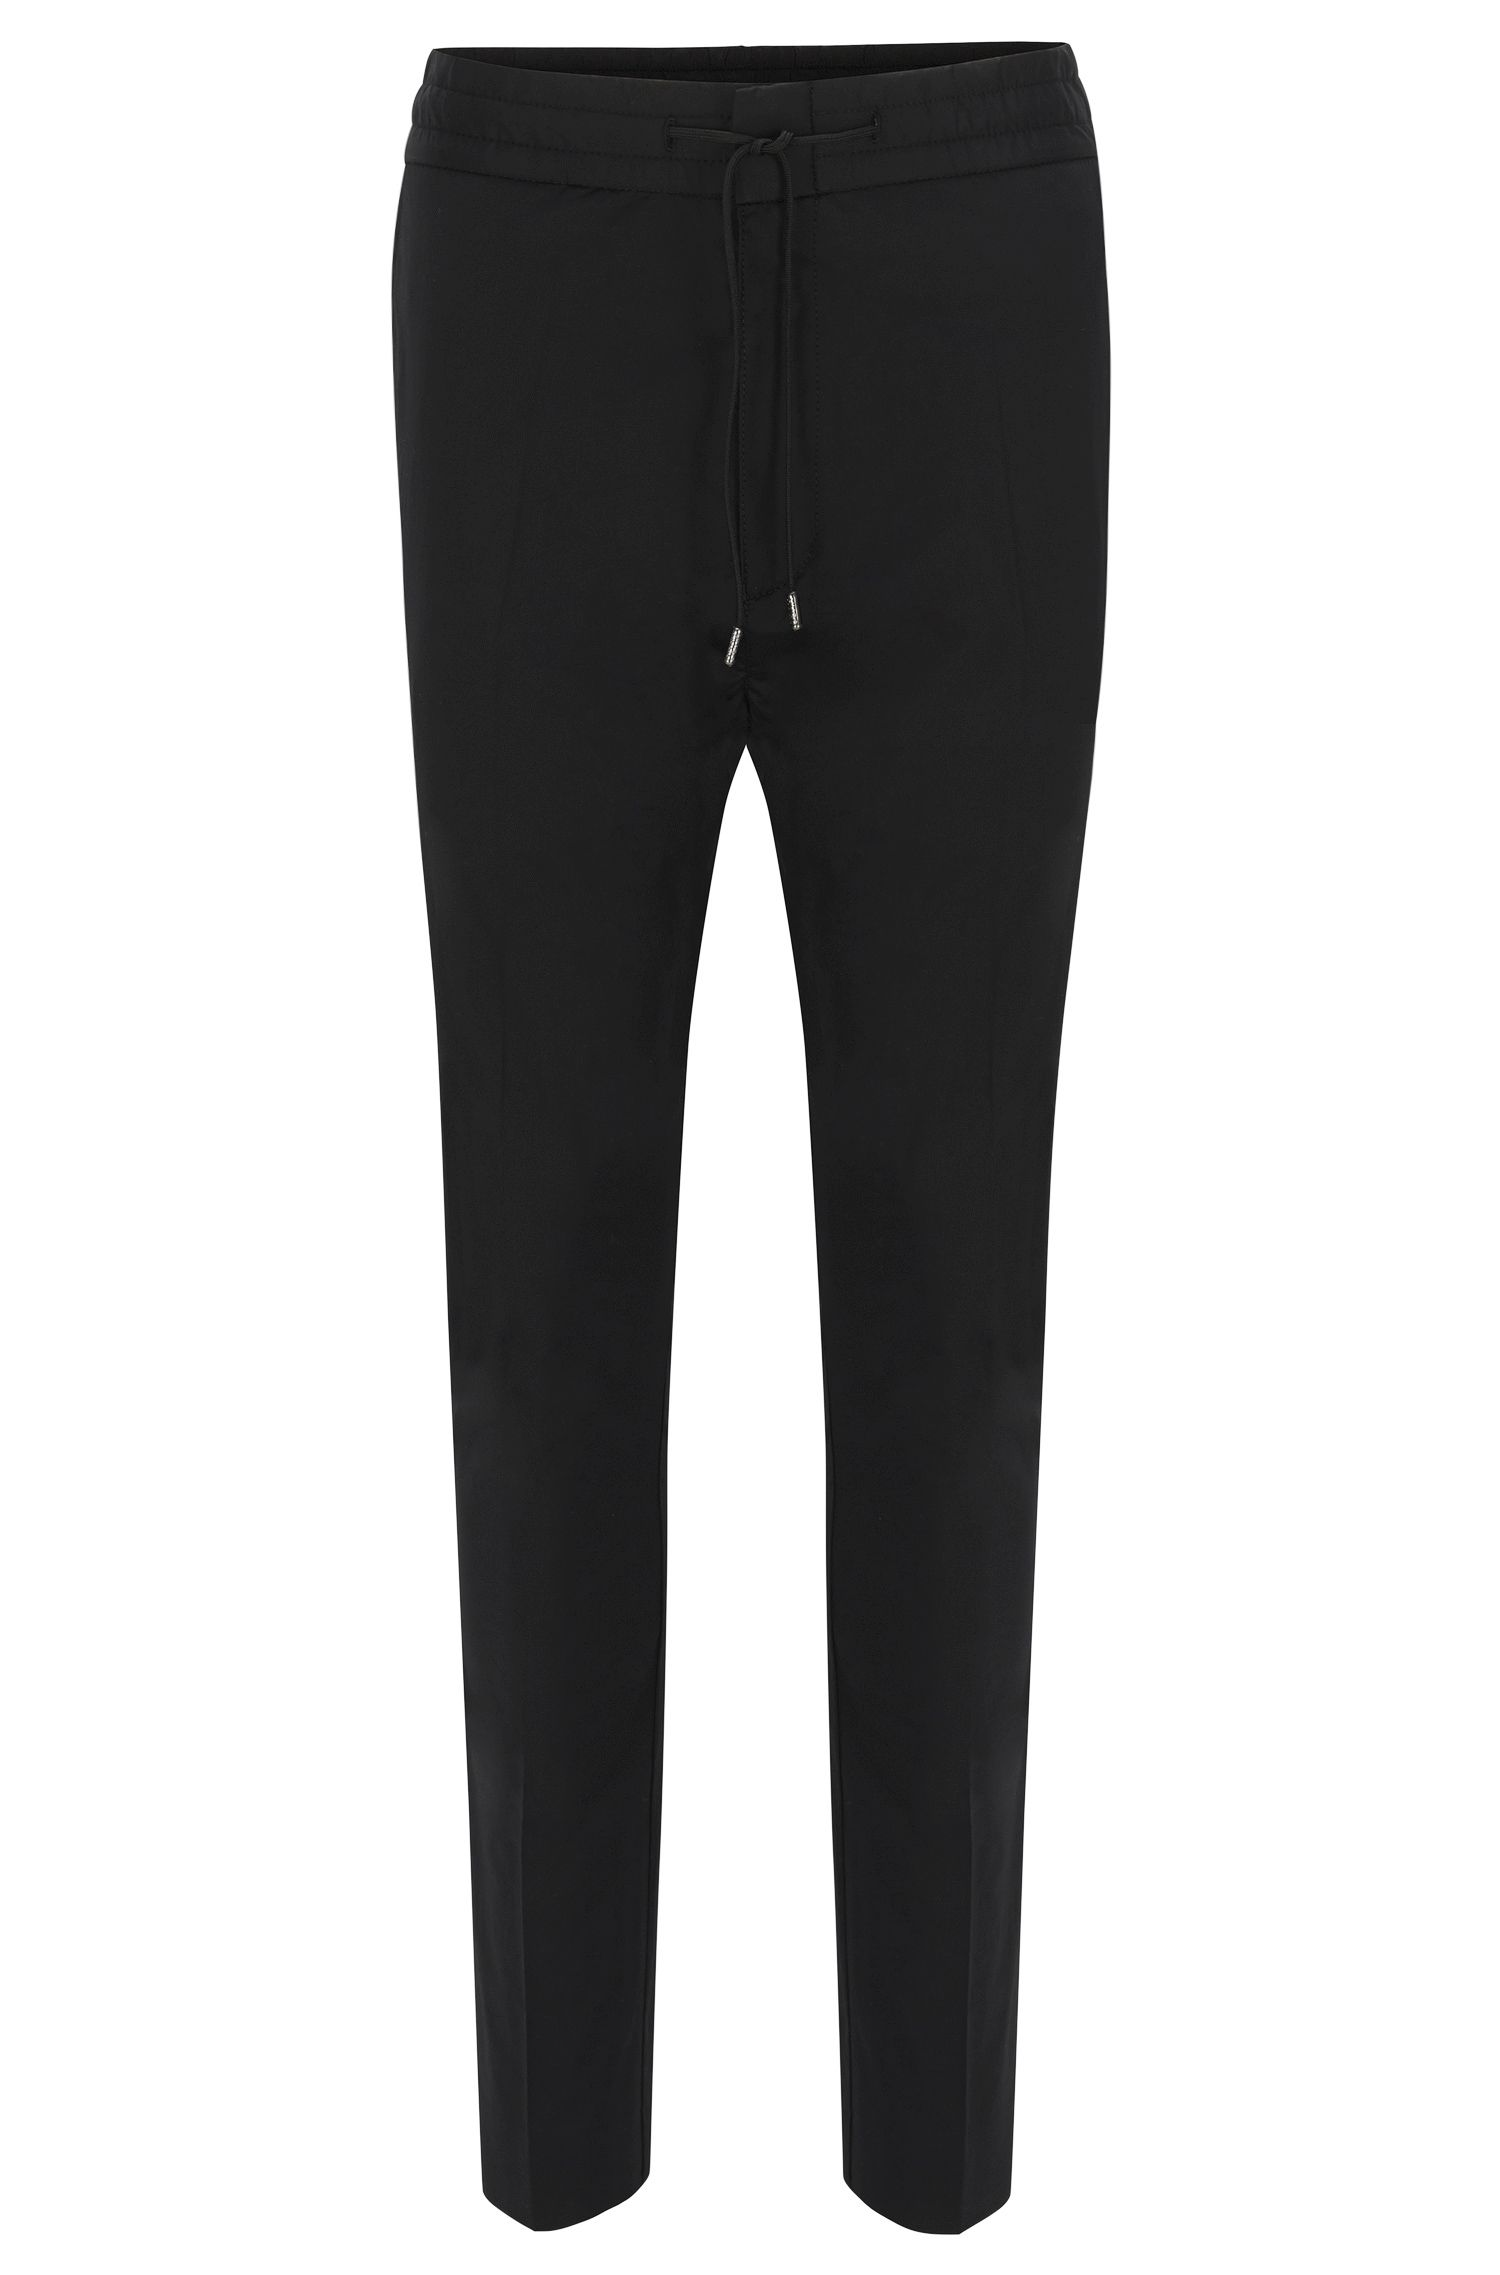 Pantalon Tapered Fit en coton stretch, avec cordon de serrage : « Himesh4 »